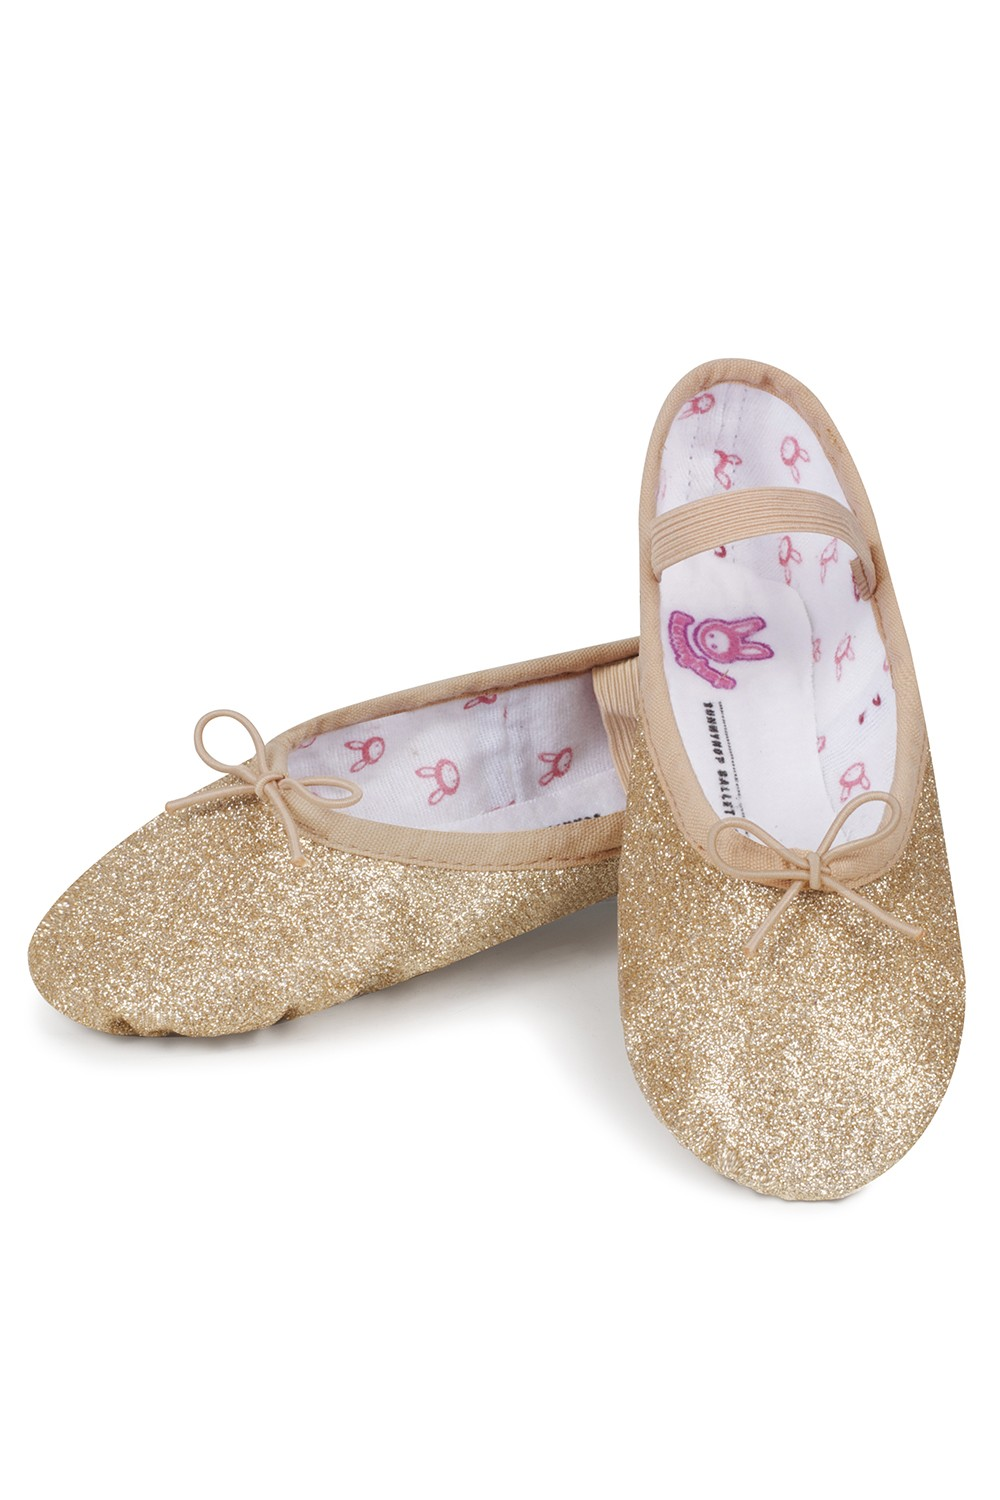 Glitterdust - Fille Girl's Ballet Shoes